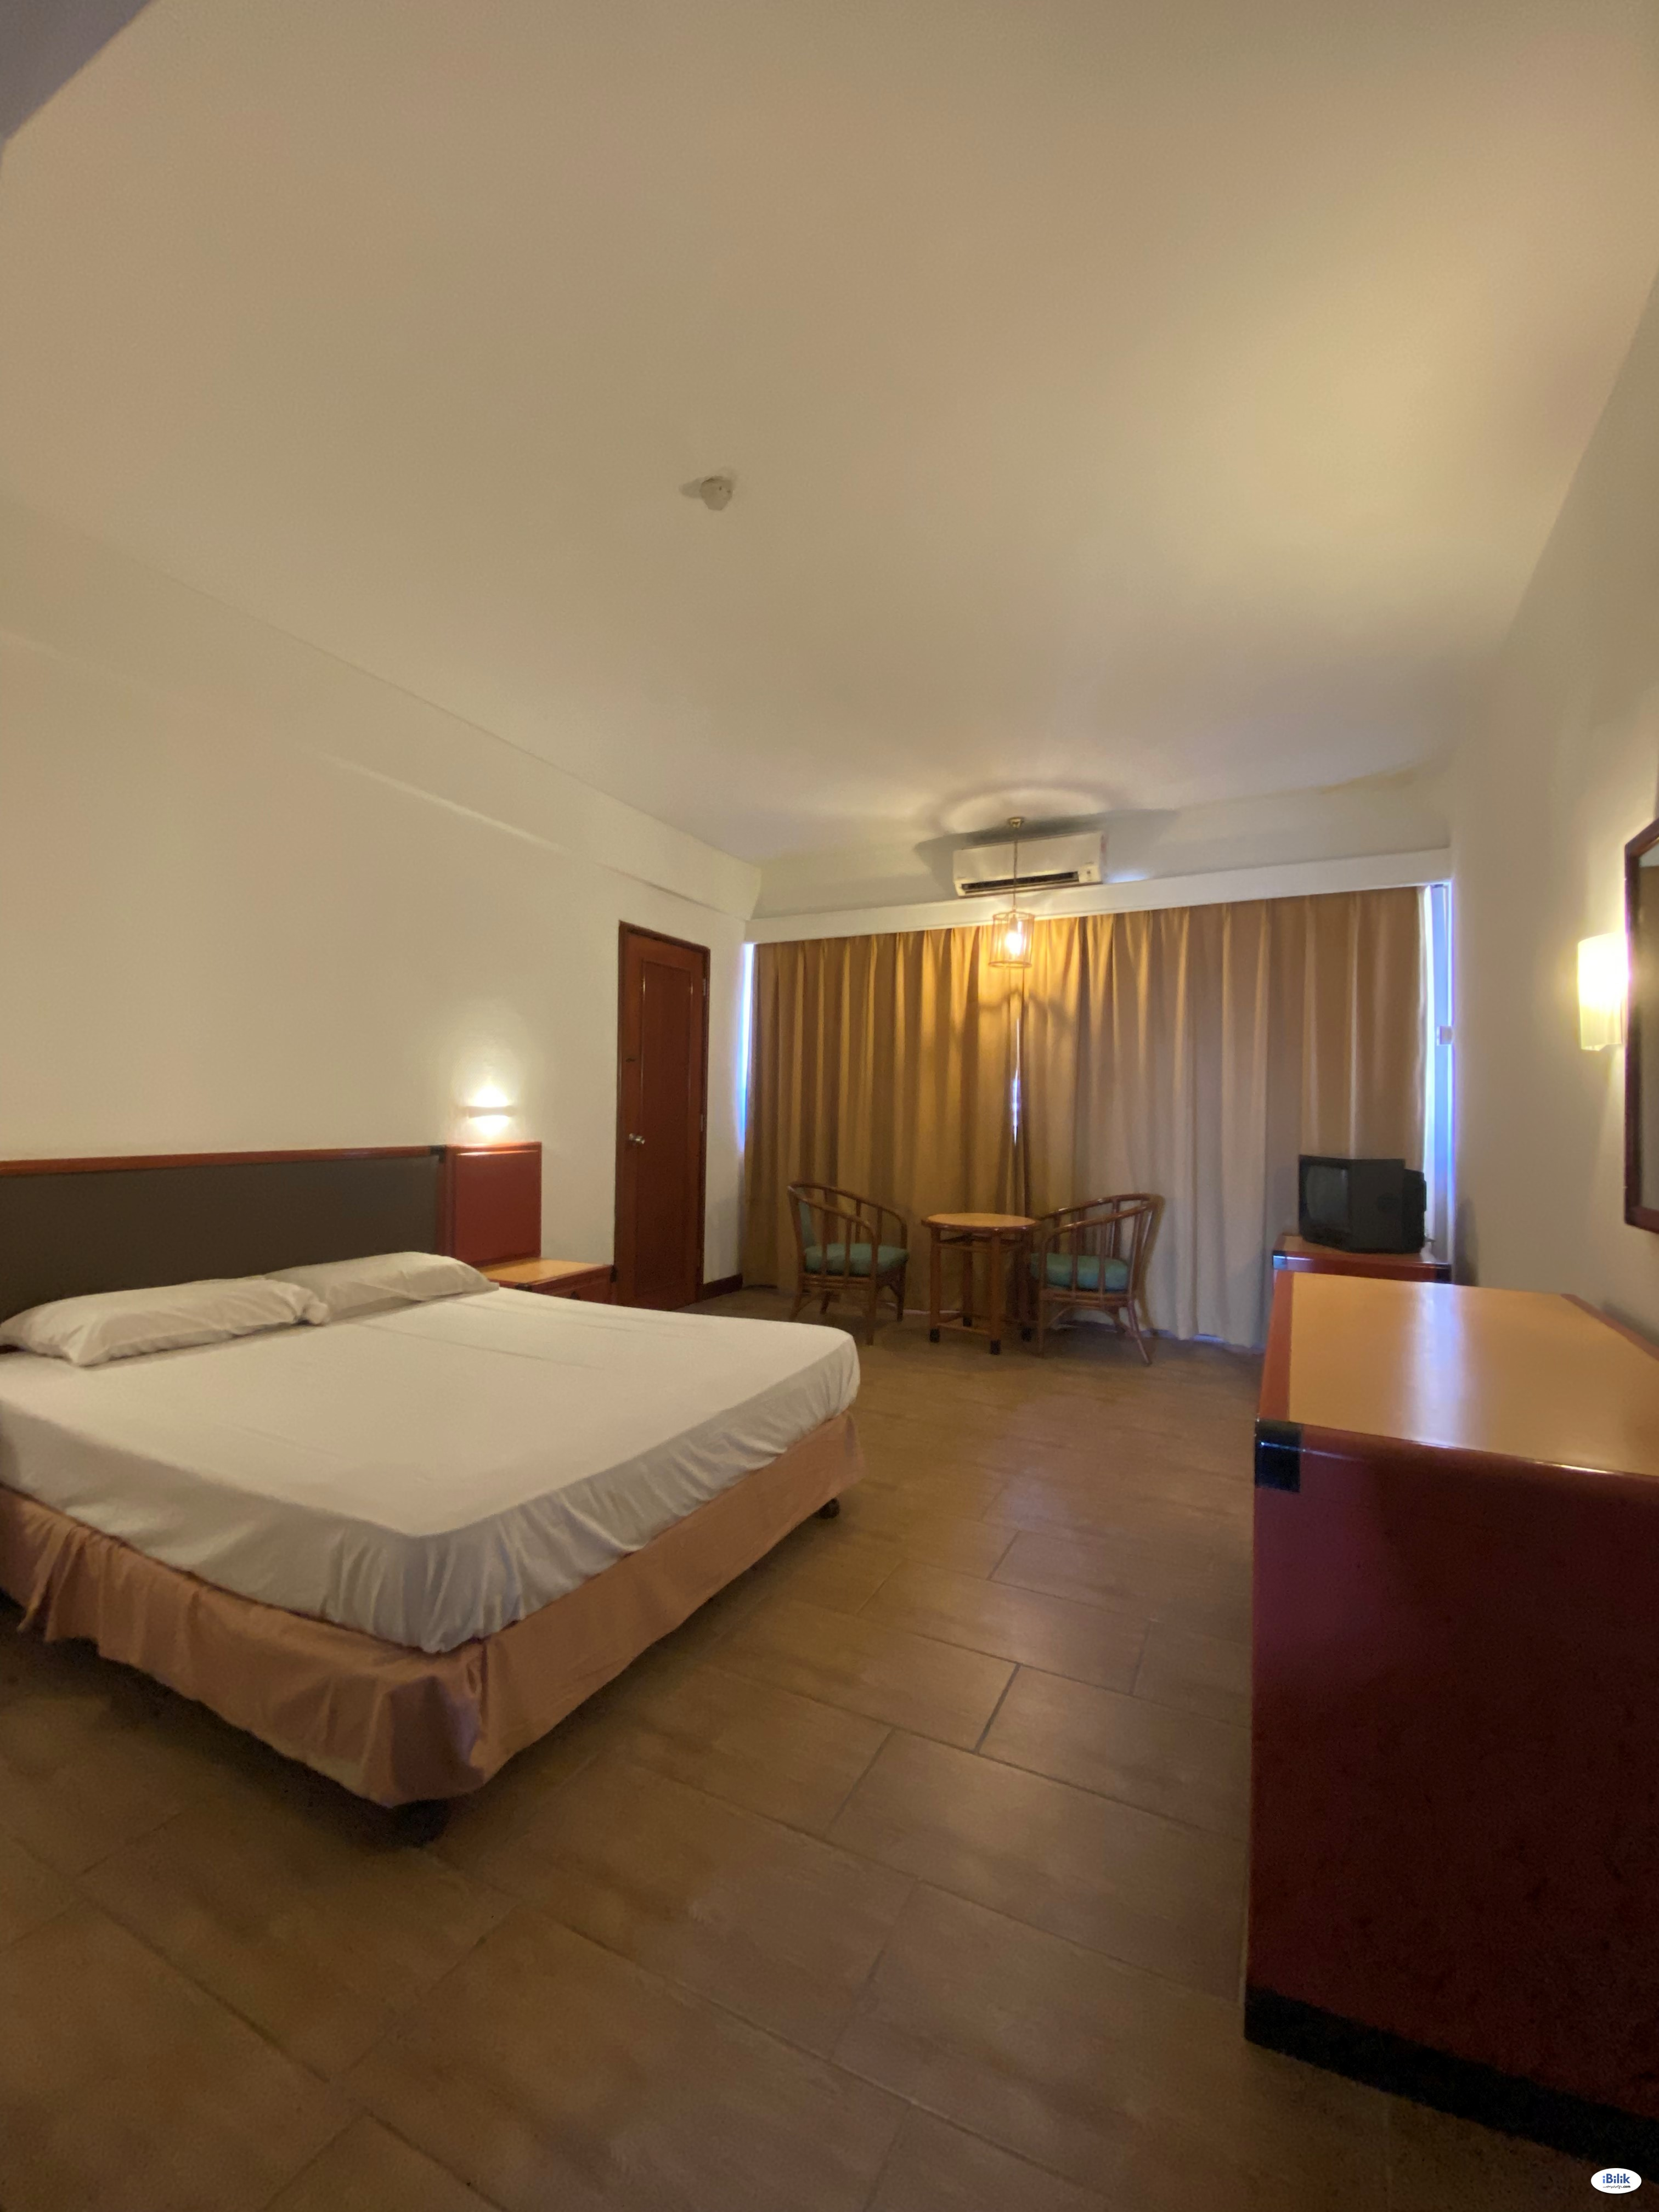 Room - Budget Hotel at Chow Kit, KL City Centre